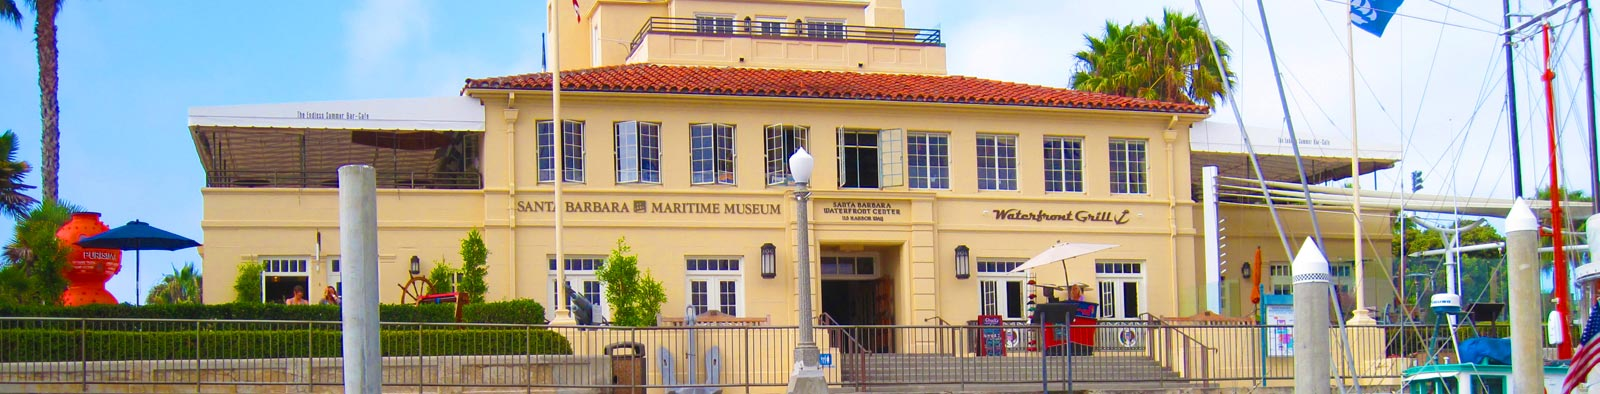 Exterior View of the Santa Barbara Maritime Museum